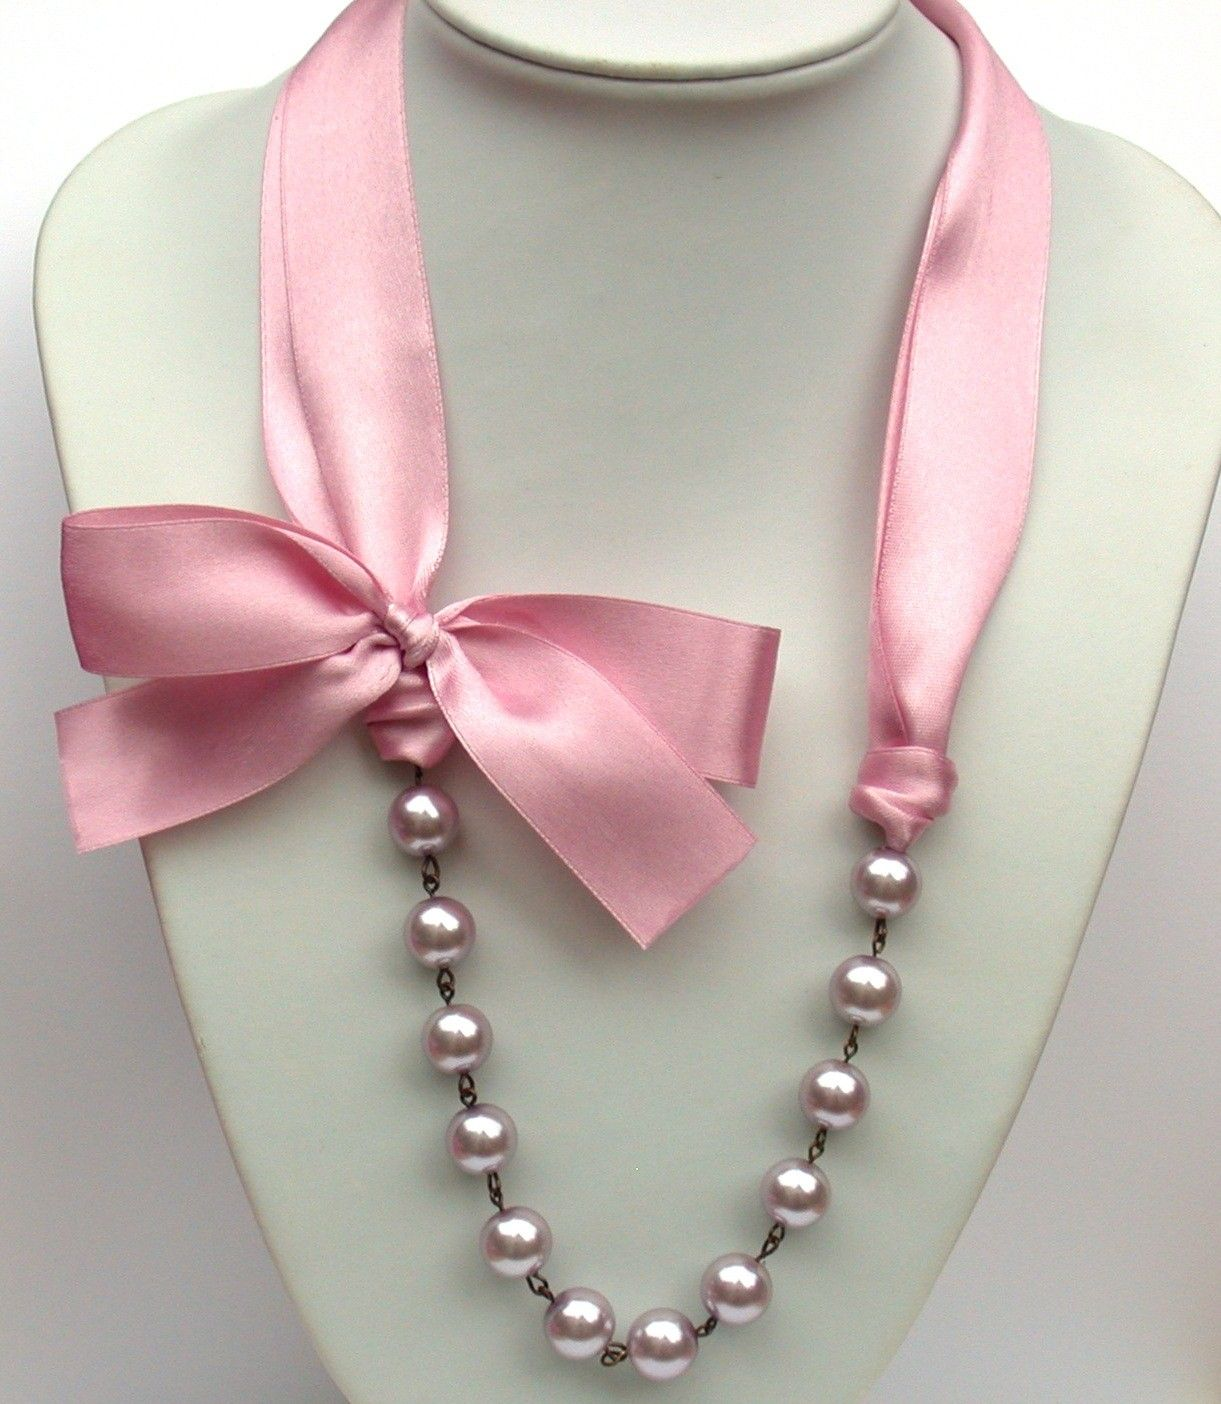 pin necklaces ribbon pinterest necklace choker satin